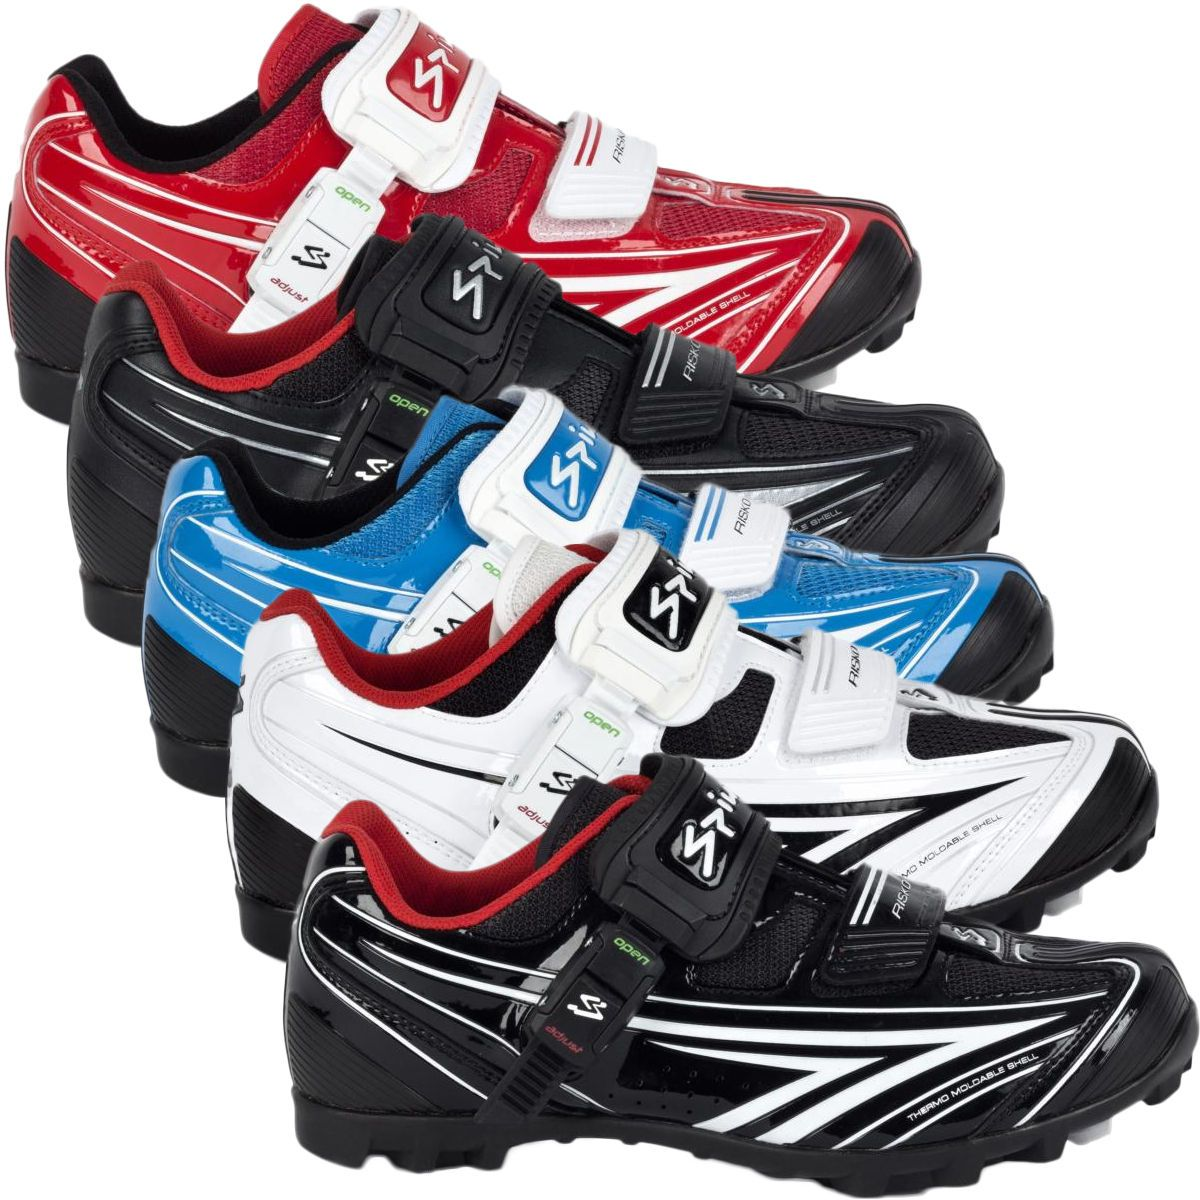 EXTRA 20 OFF ON MEN SHOES at Indiatimes shopping. Mtb